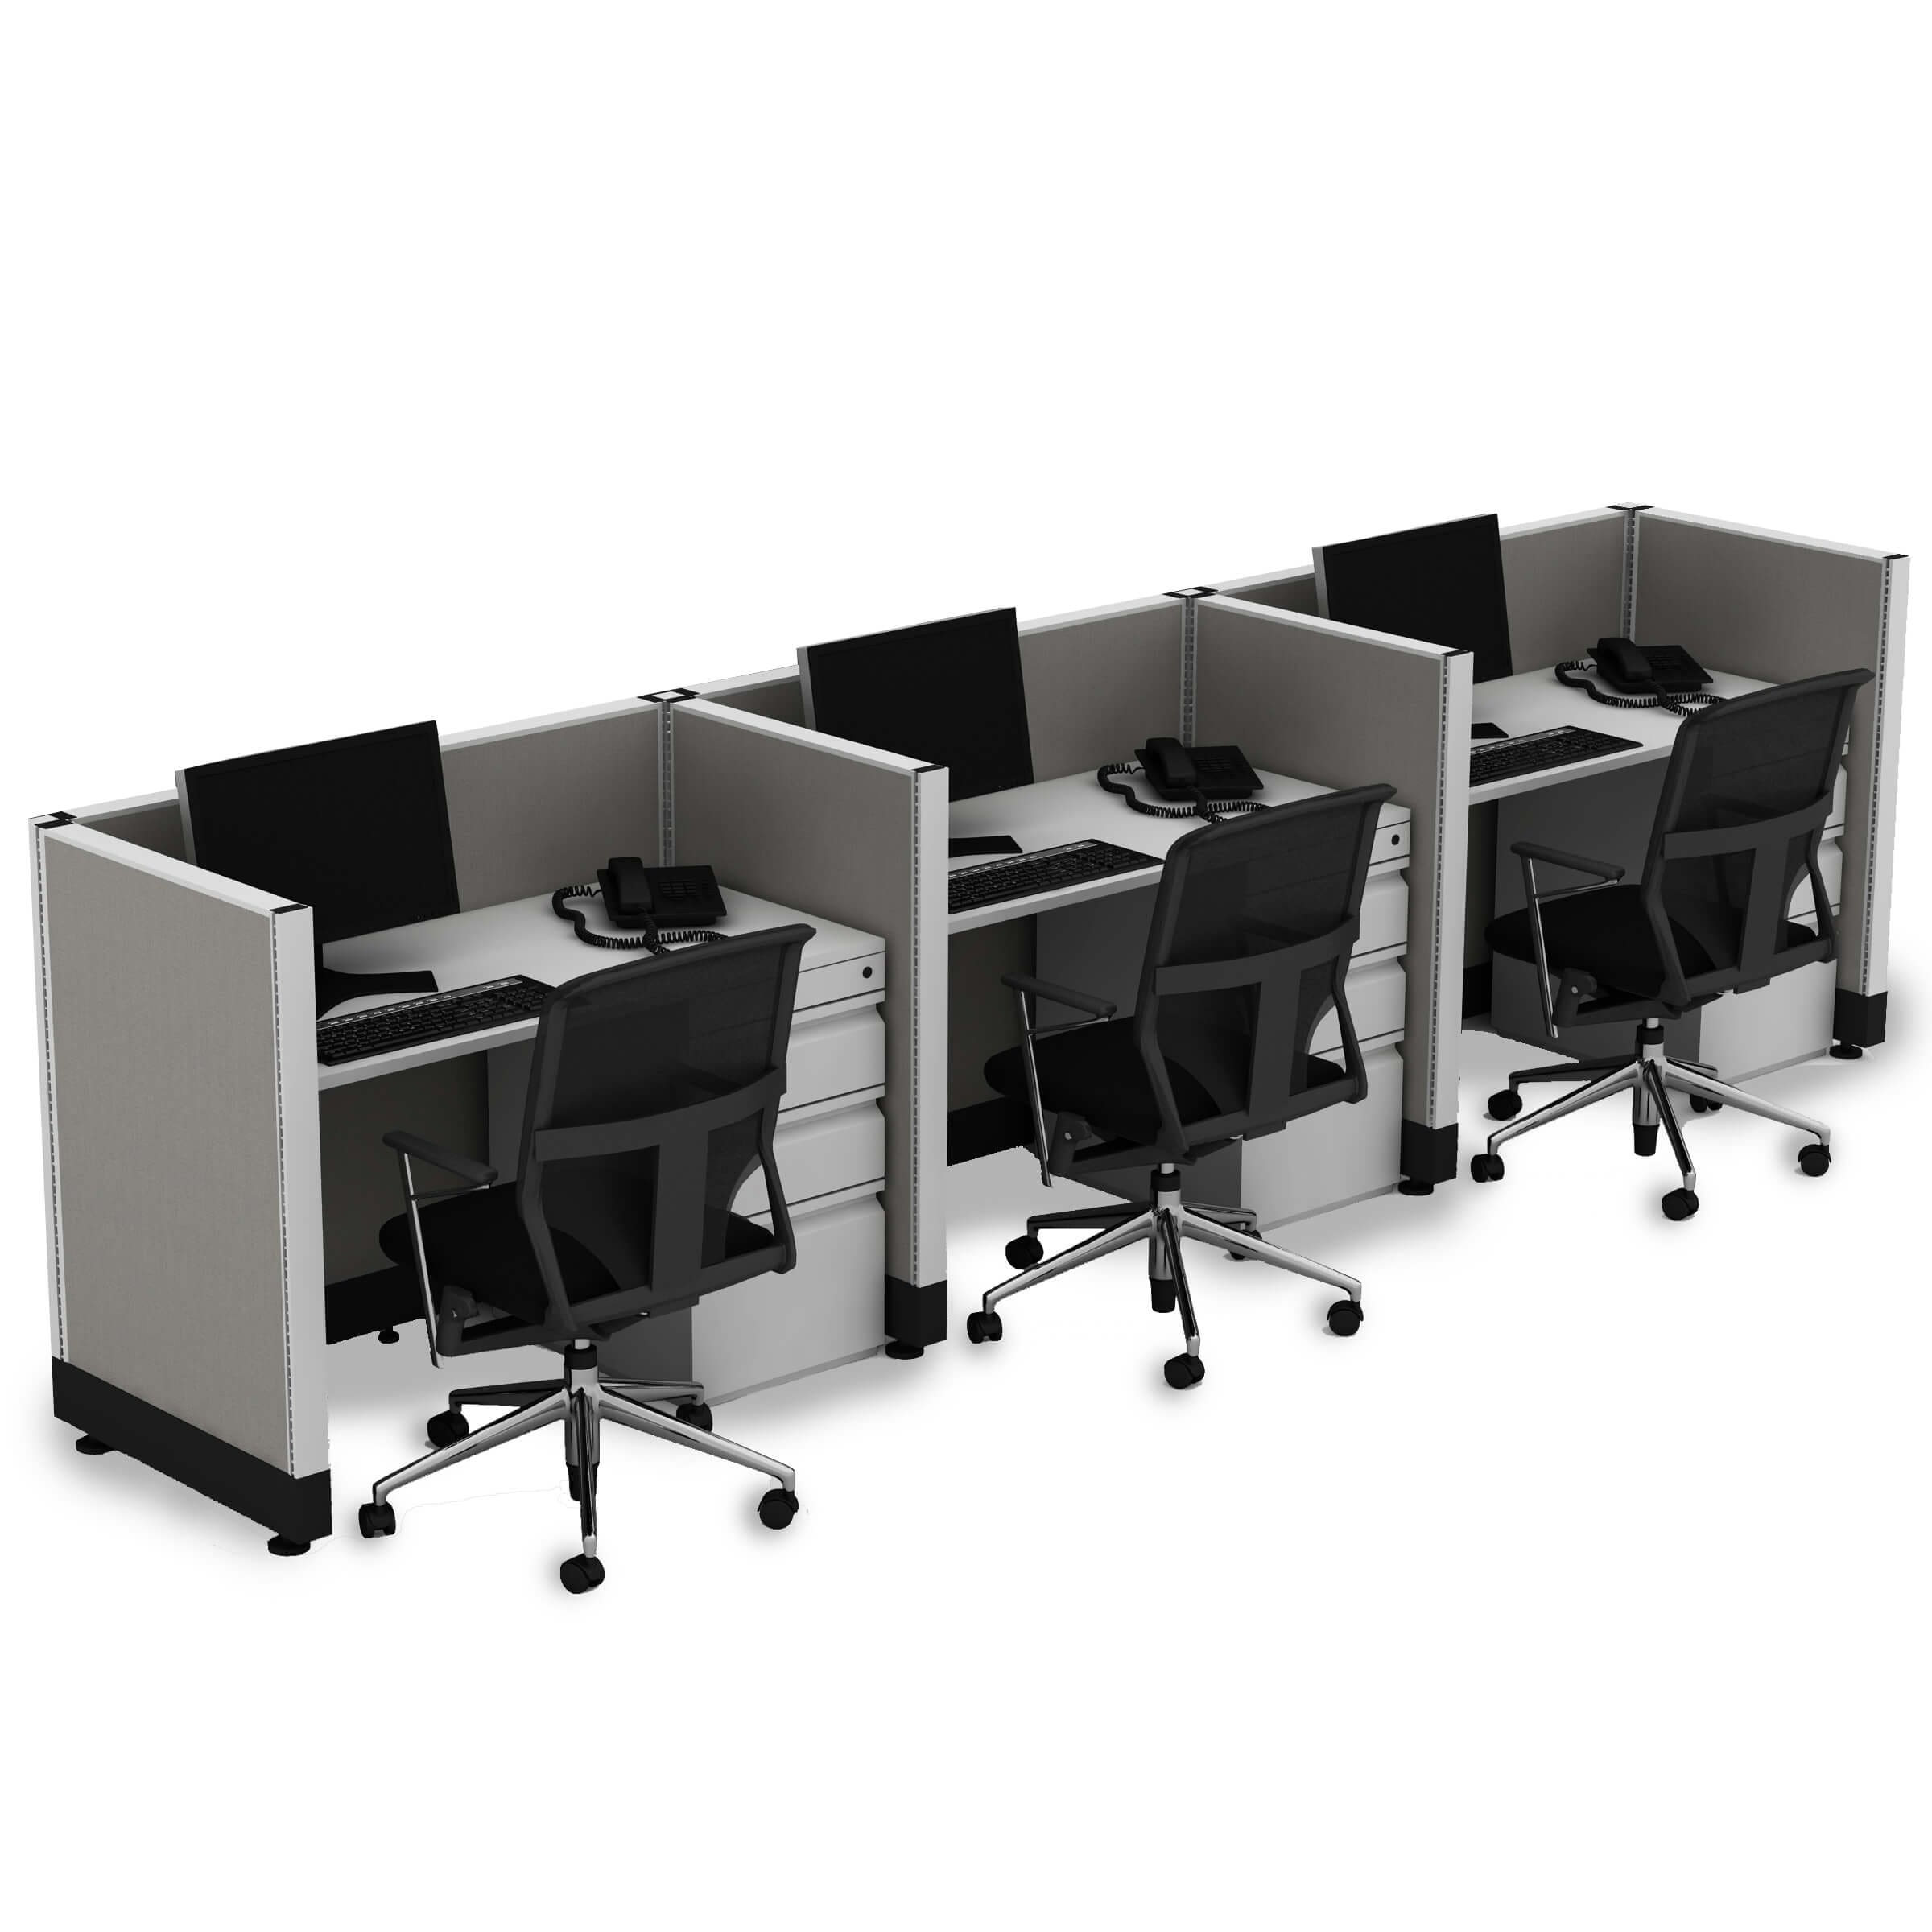 Small Cubicles 39H 3pack Inline Powered (2x4 - White Desk Silver Paint - Assembly Required)